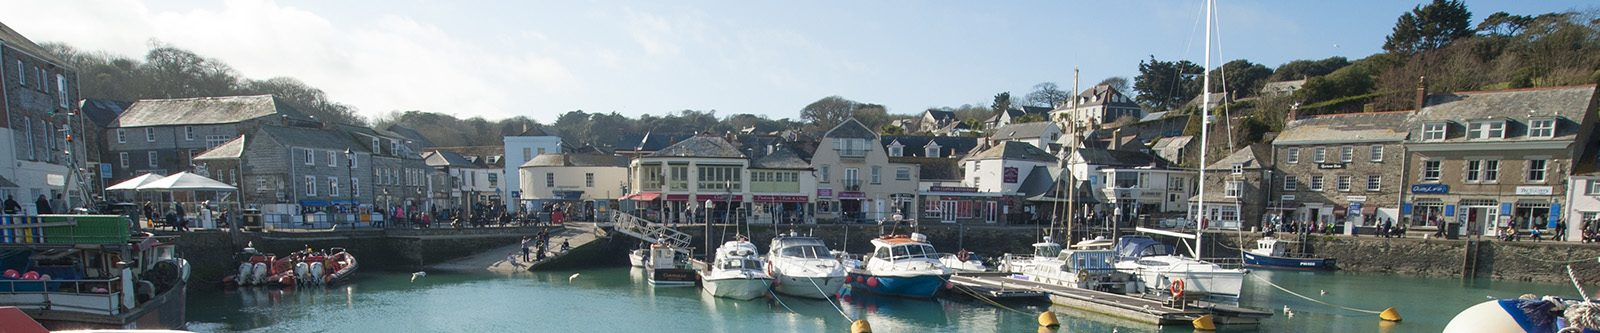 harbour at Padstow